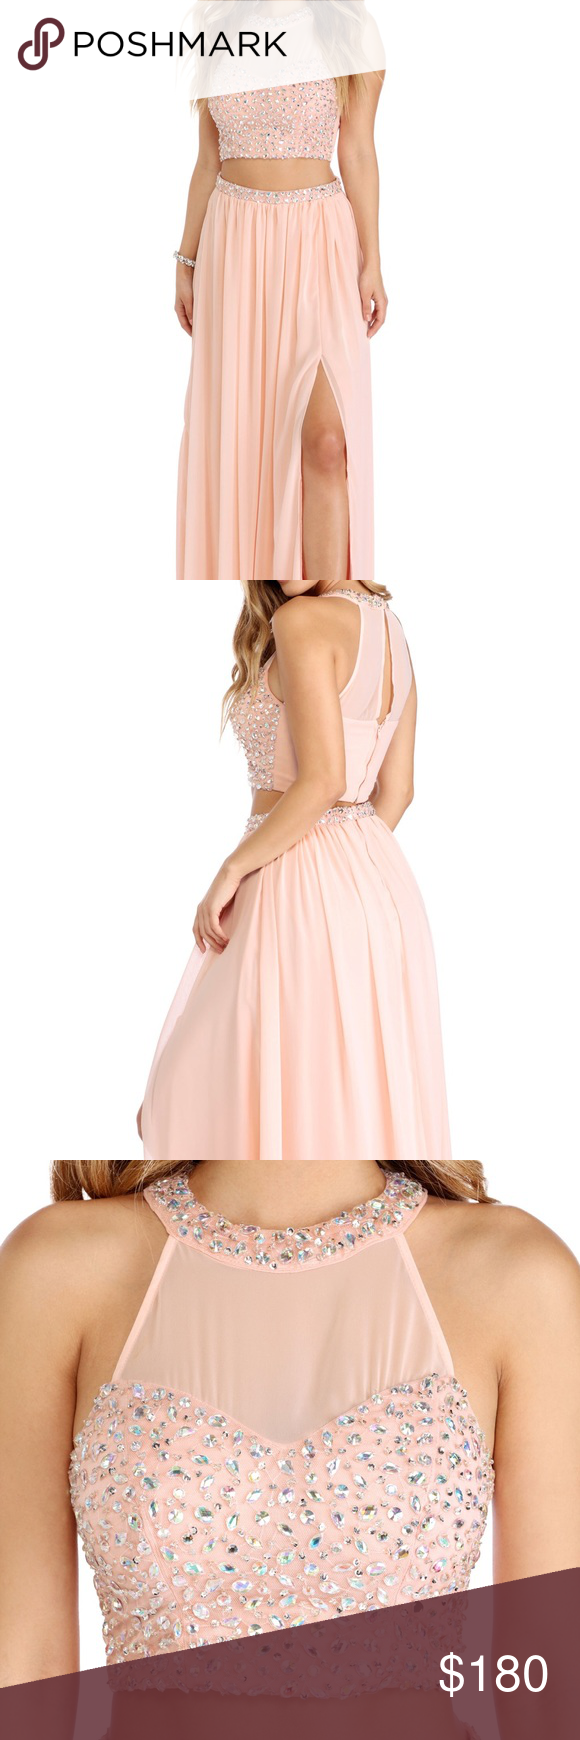 Light pink two piece prom dress size not worn i bought this